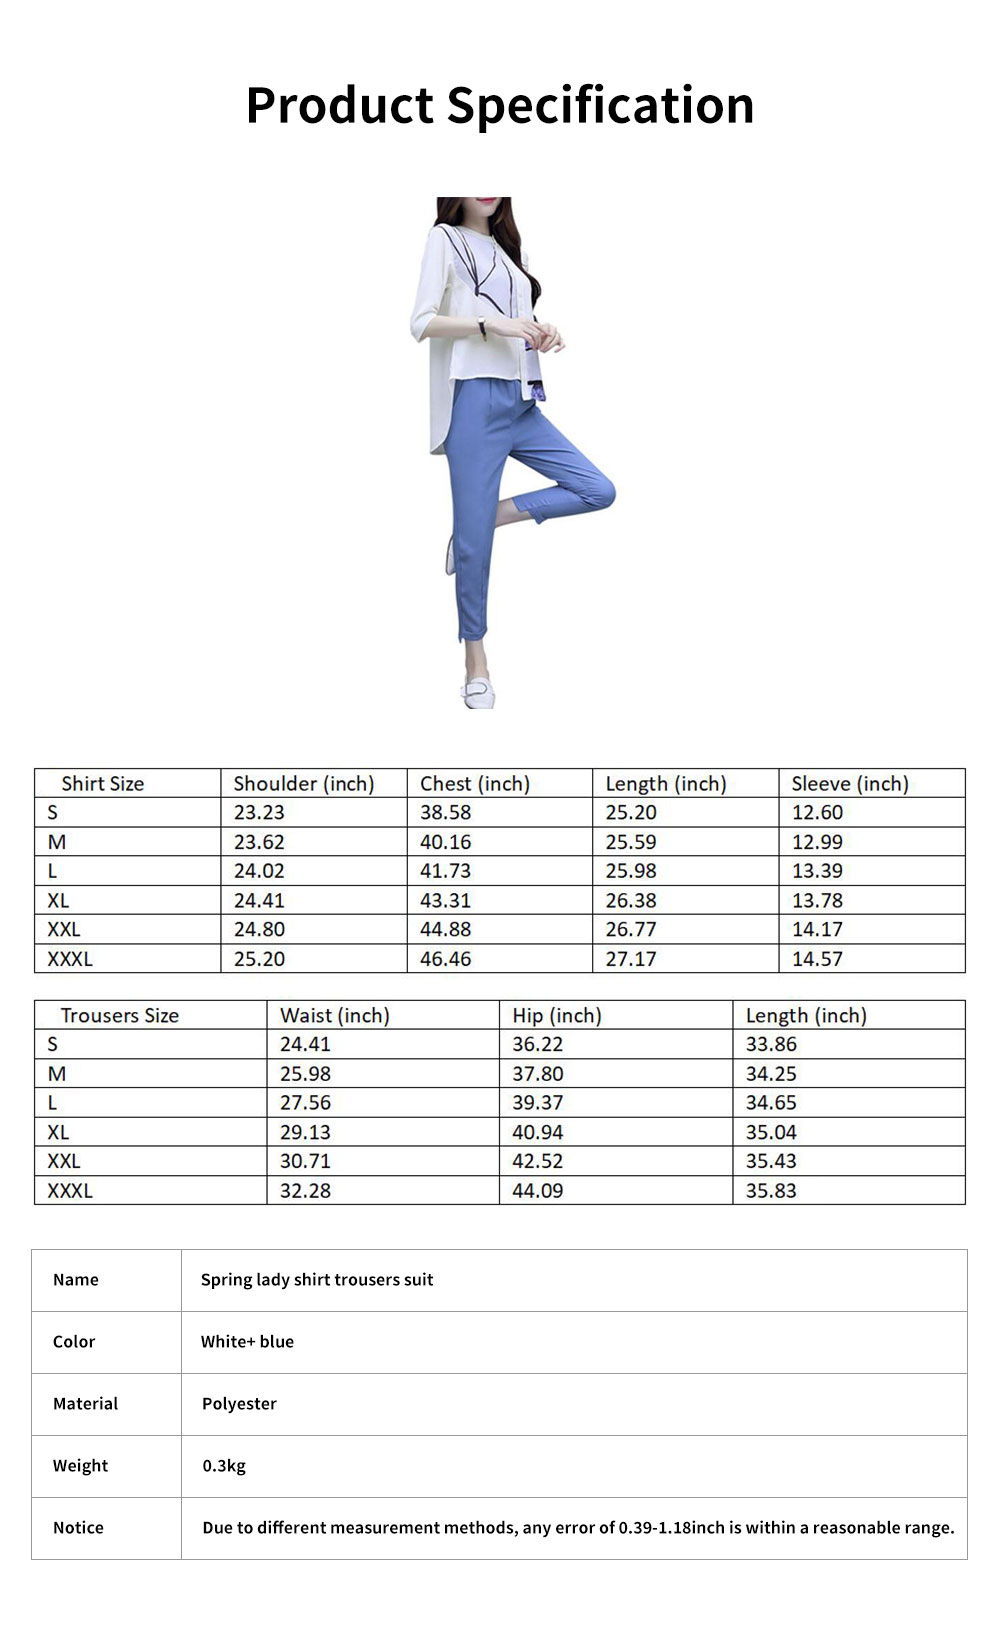 Minimalist Atmosphere Spring Lady Shirt Casual Trousers Suit Fashion Light Feet Pants Jointed Style Top for Women 7